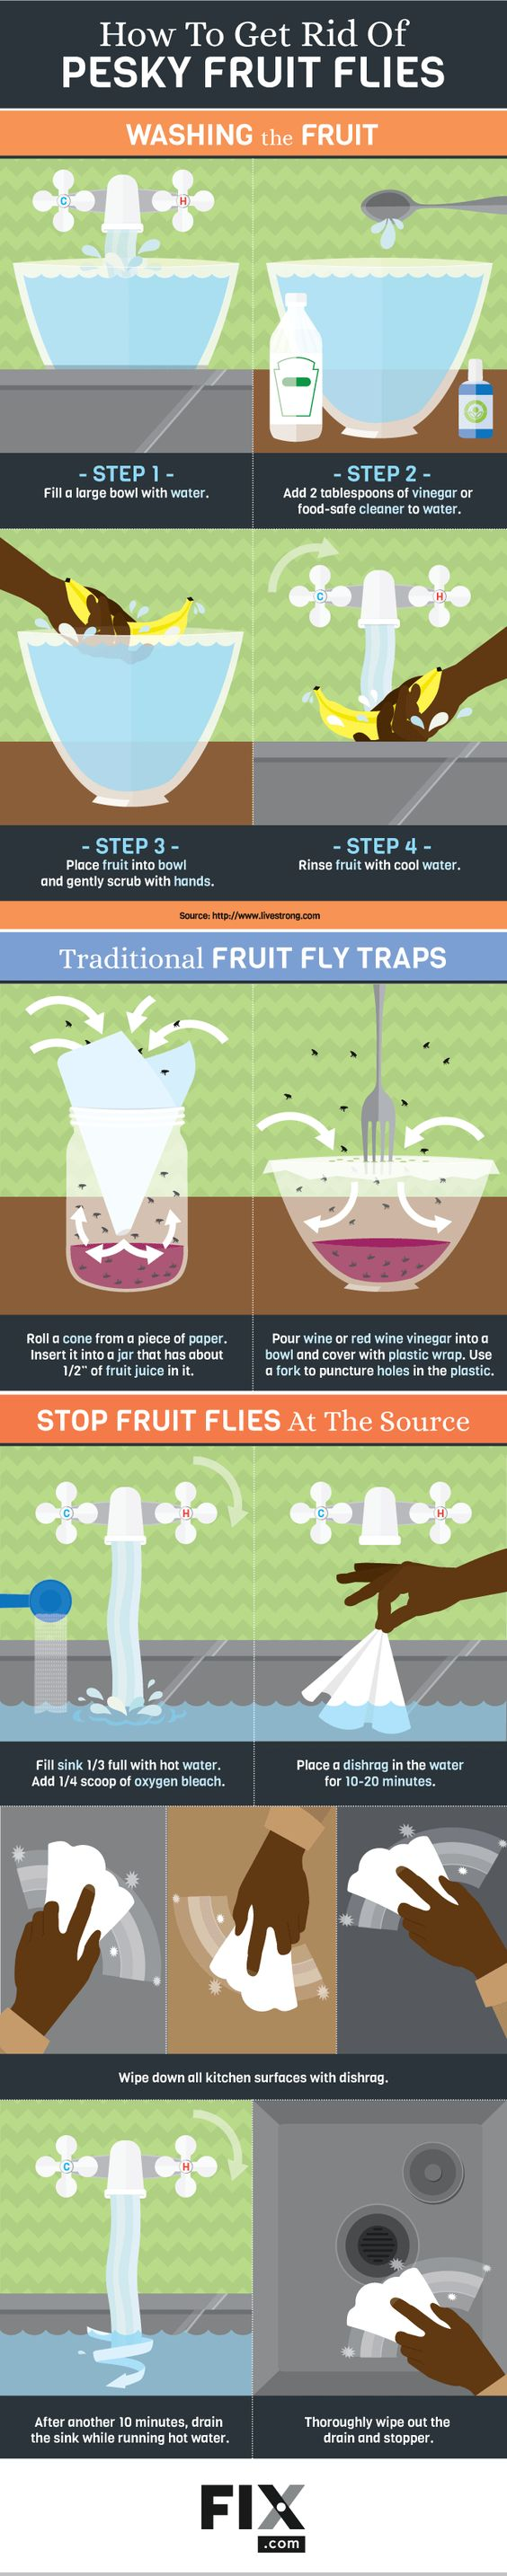 How to Really Get Rid of Pesky Fruit Flies #infographic #HowTo #Food